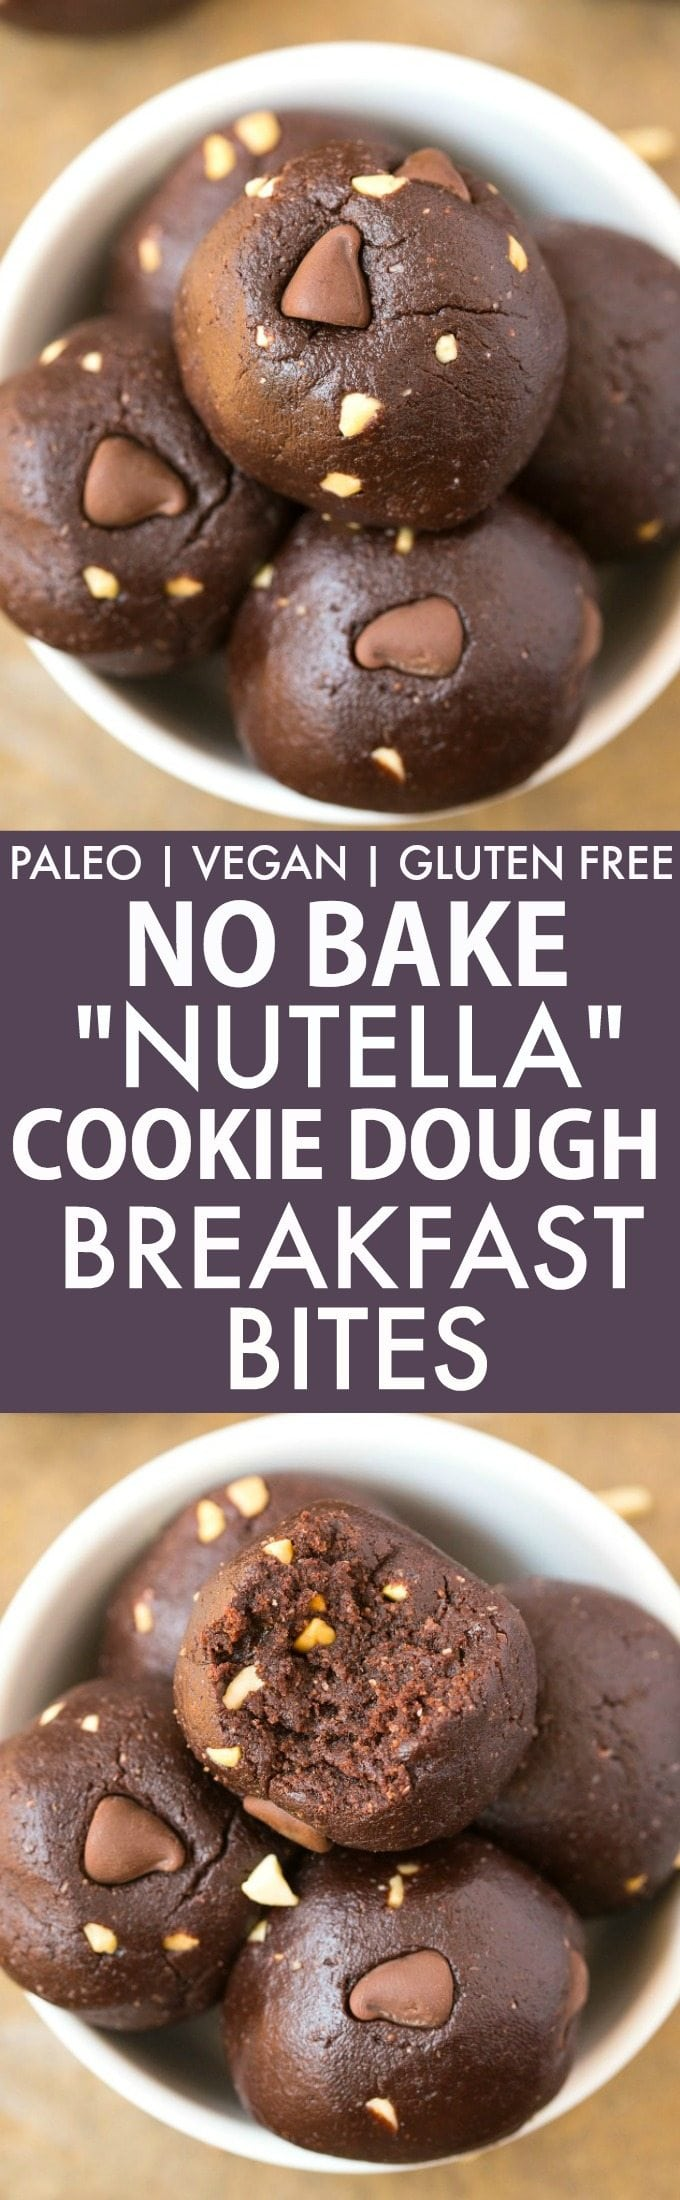 """Healthy No Bake """"Nutella"""" Cookie Dough BREAKFAST Bites (GF, V, Paleo)- Quick, easy and delicious no bake bites which take minutes to whip up and like having a guilt-free, protein packed dessert for breakfast! Dairy free and refined sugar free! {vegan, gluten free, paleo recipe}- thebigmansworld.com"""